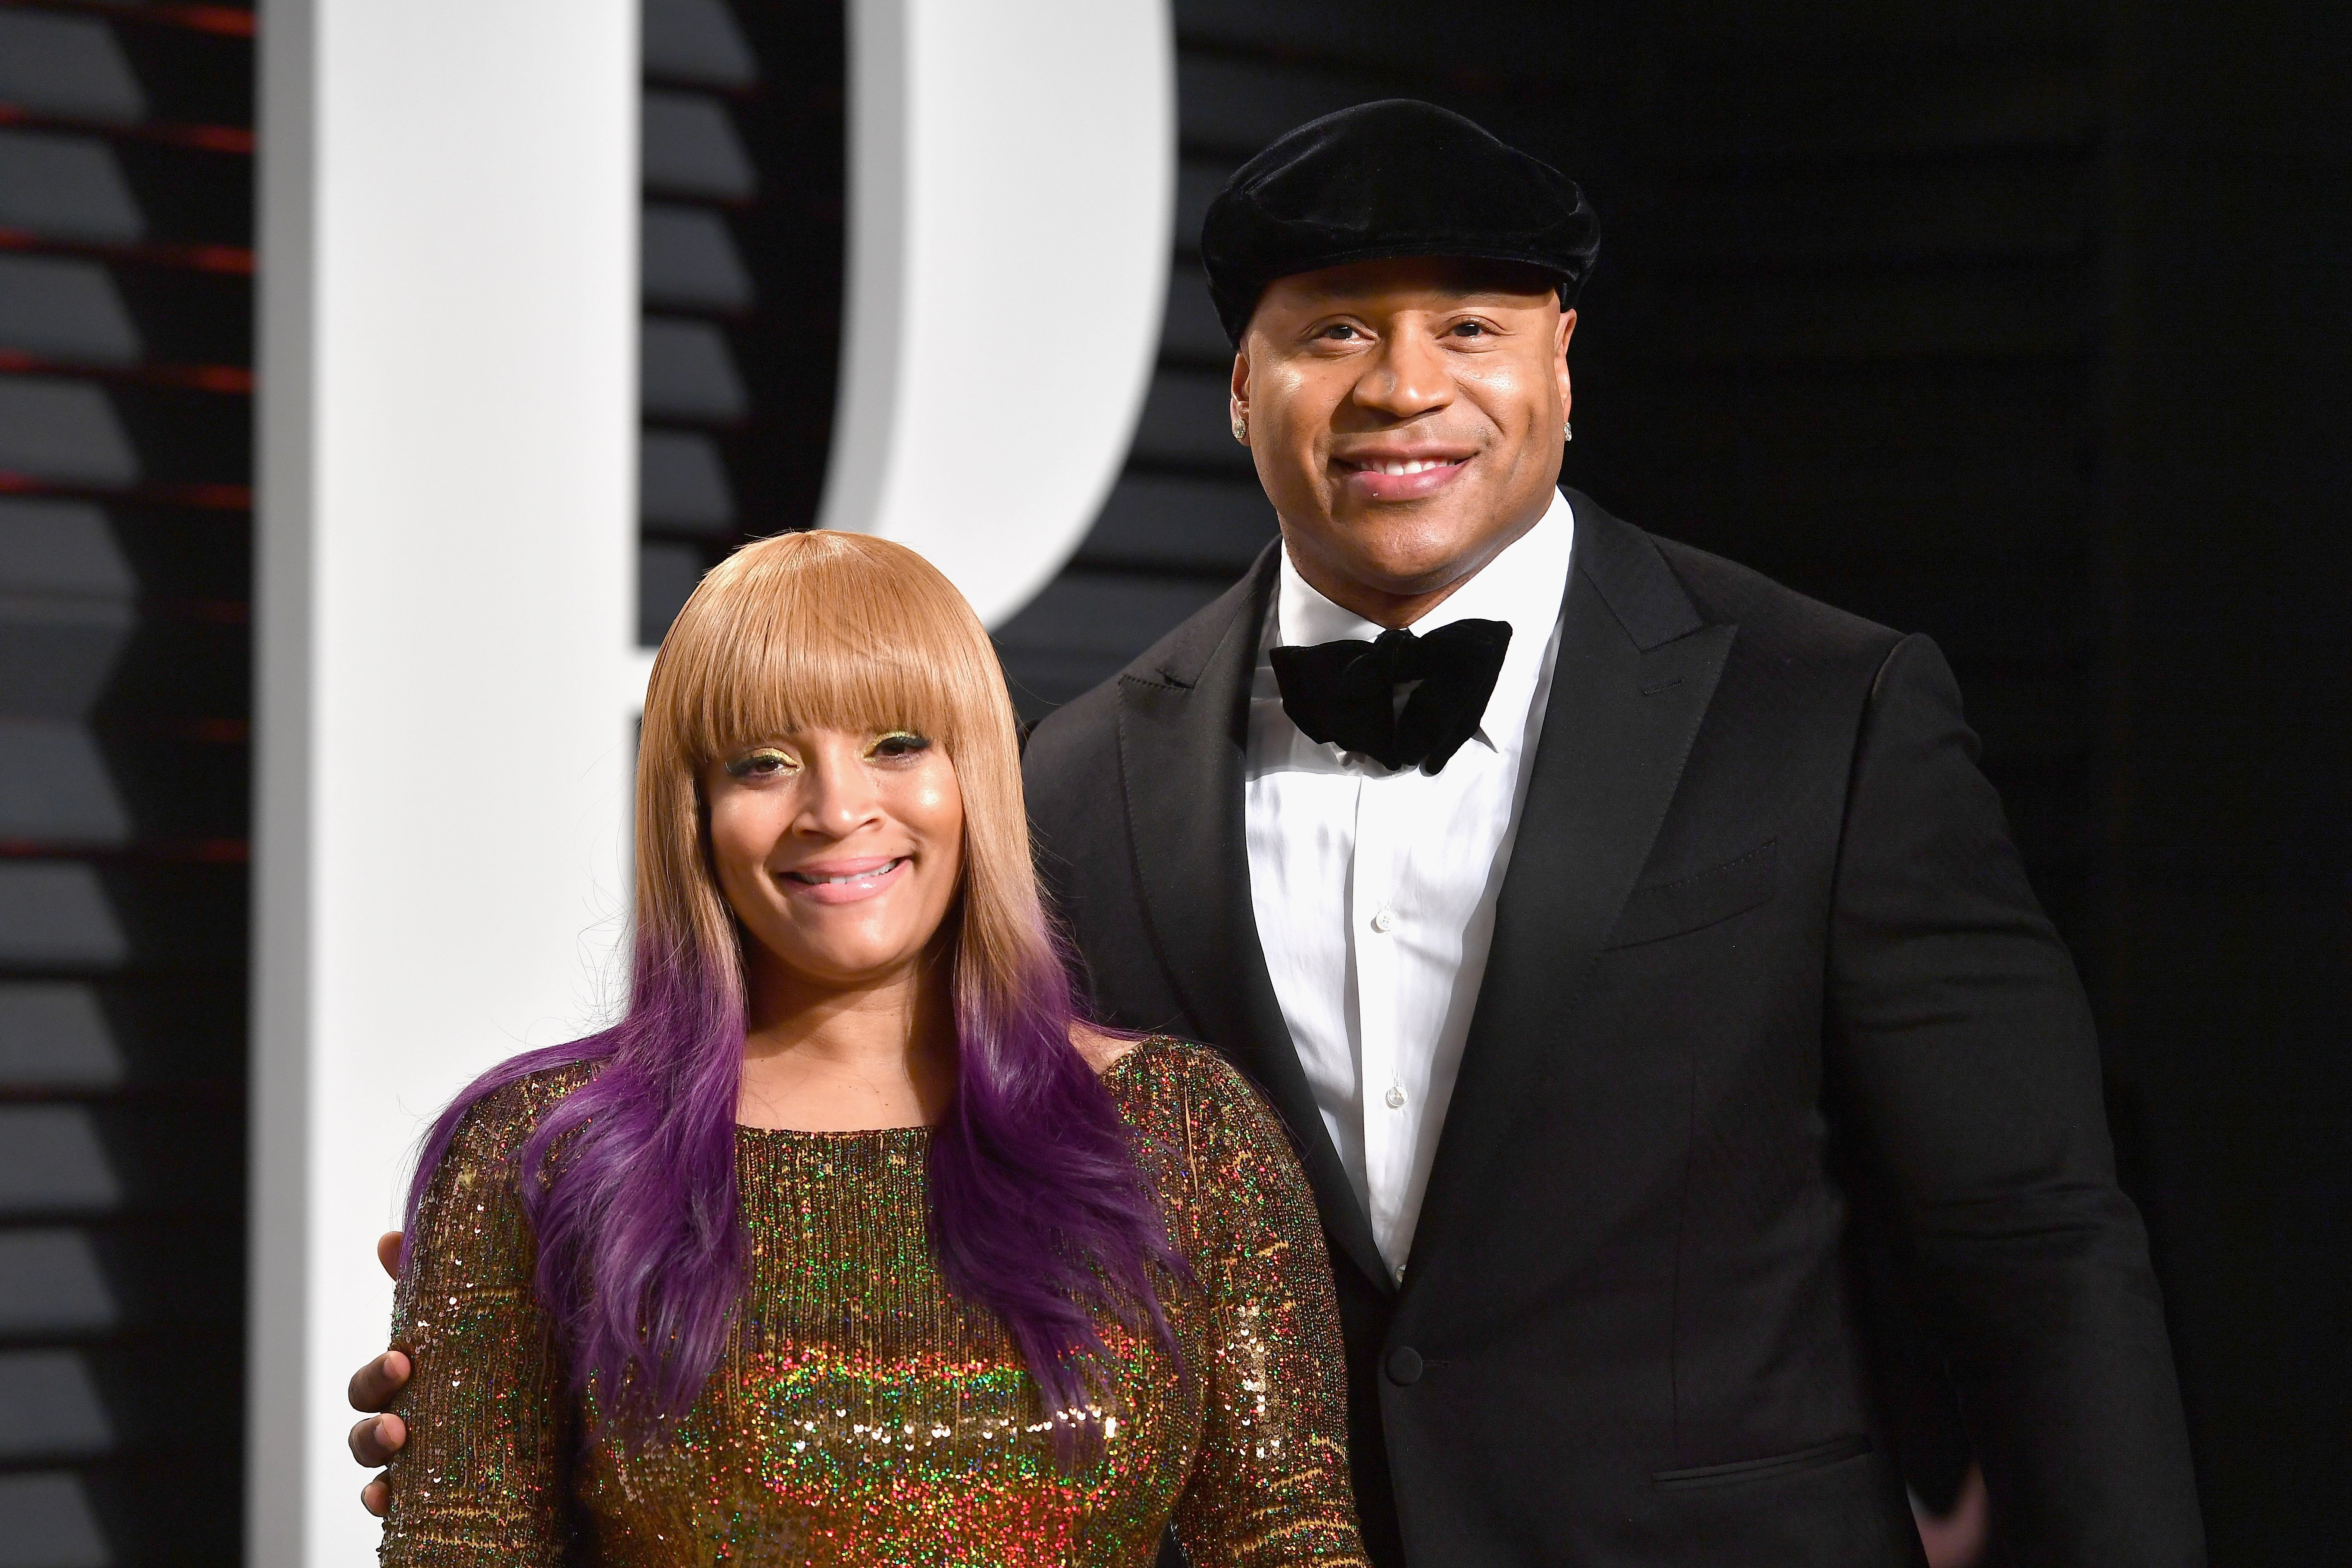 Simone Smith and LL Cool J at the Vanity Fair Oscar Party on February 26, 2017. | Source: Getty Images